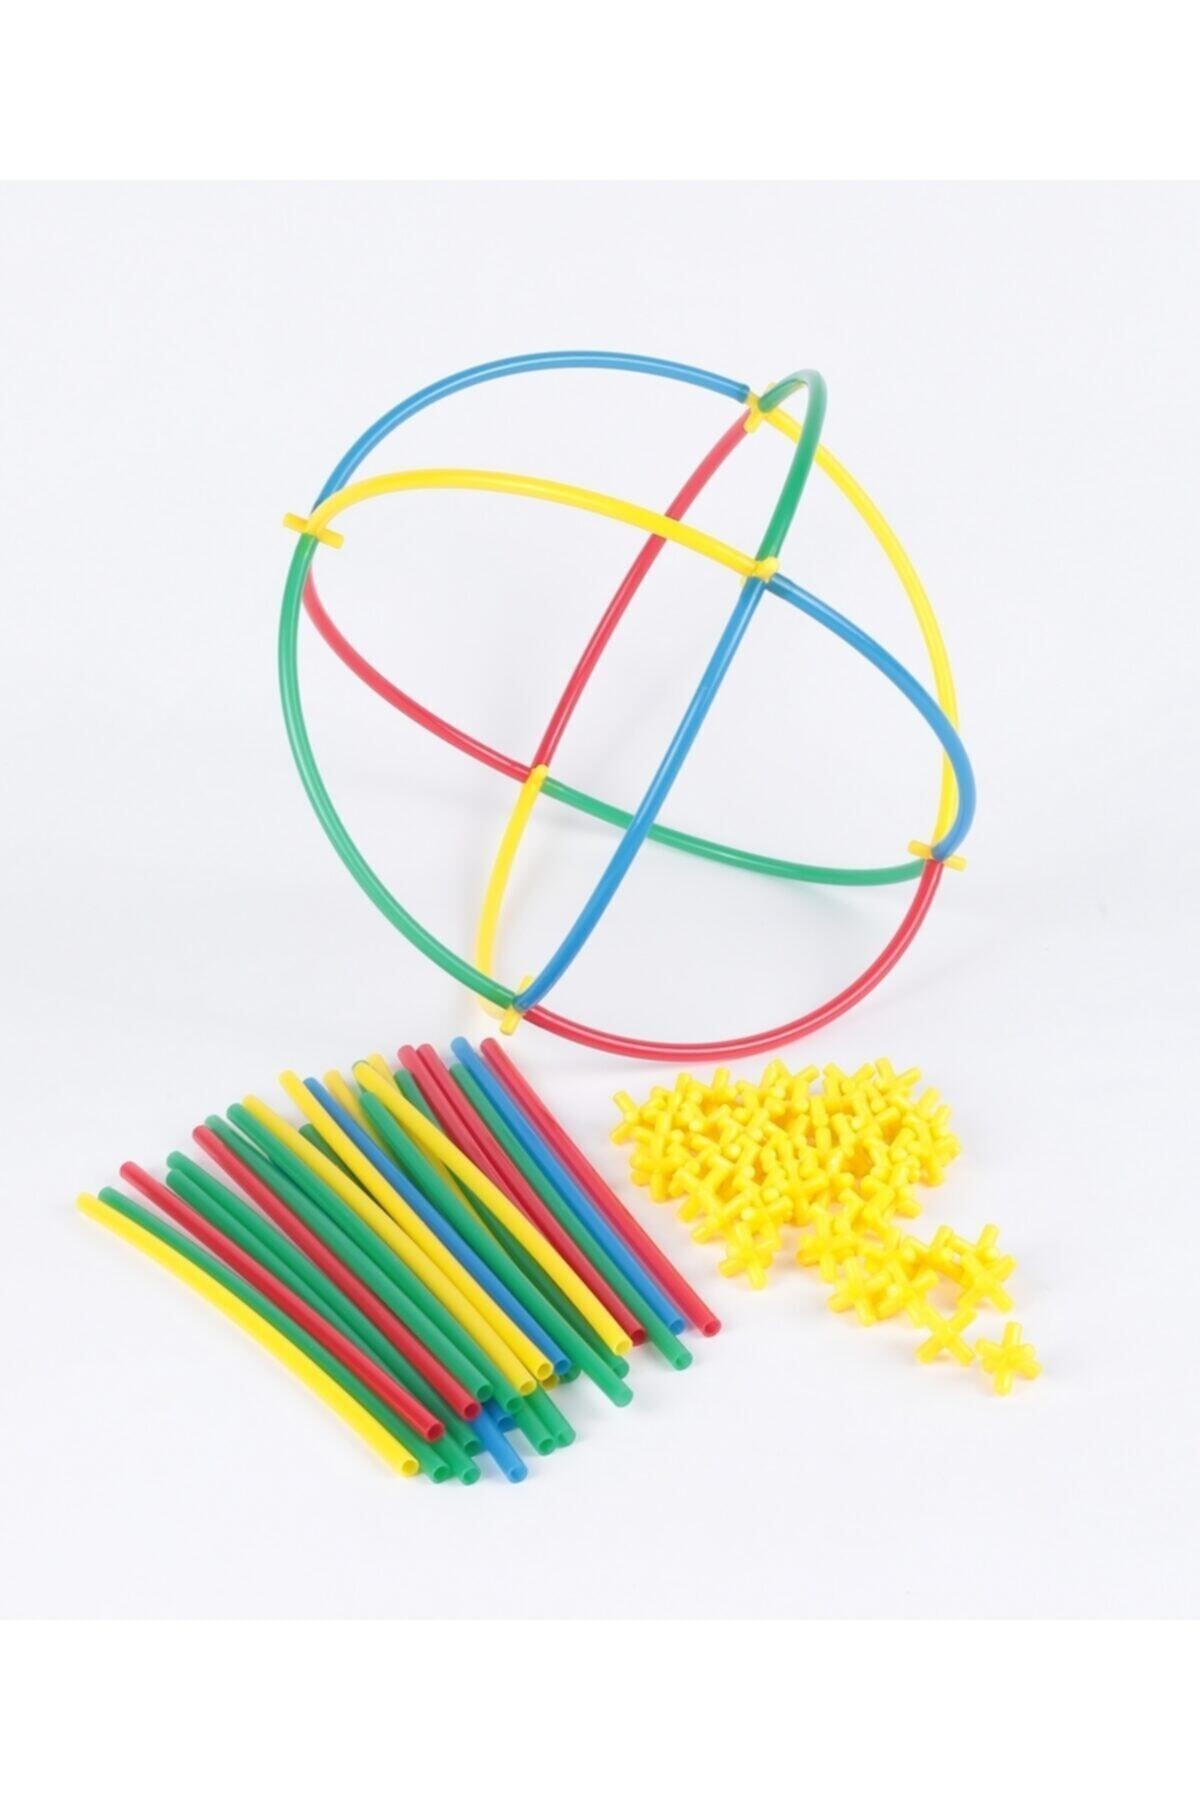 300 Pieces Fun Bamboo Sticks Without Box Educational Intelligence Game Hobby Entertainment Game Developer Free Shipping